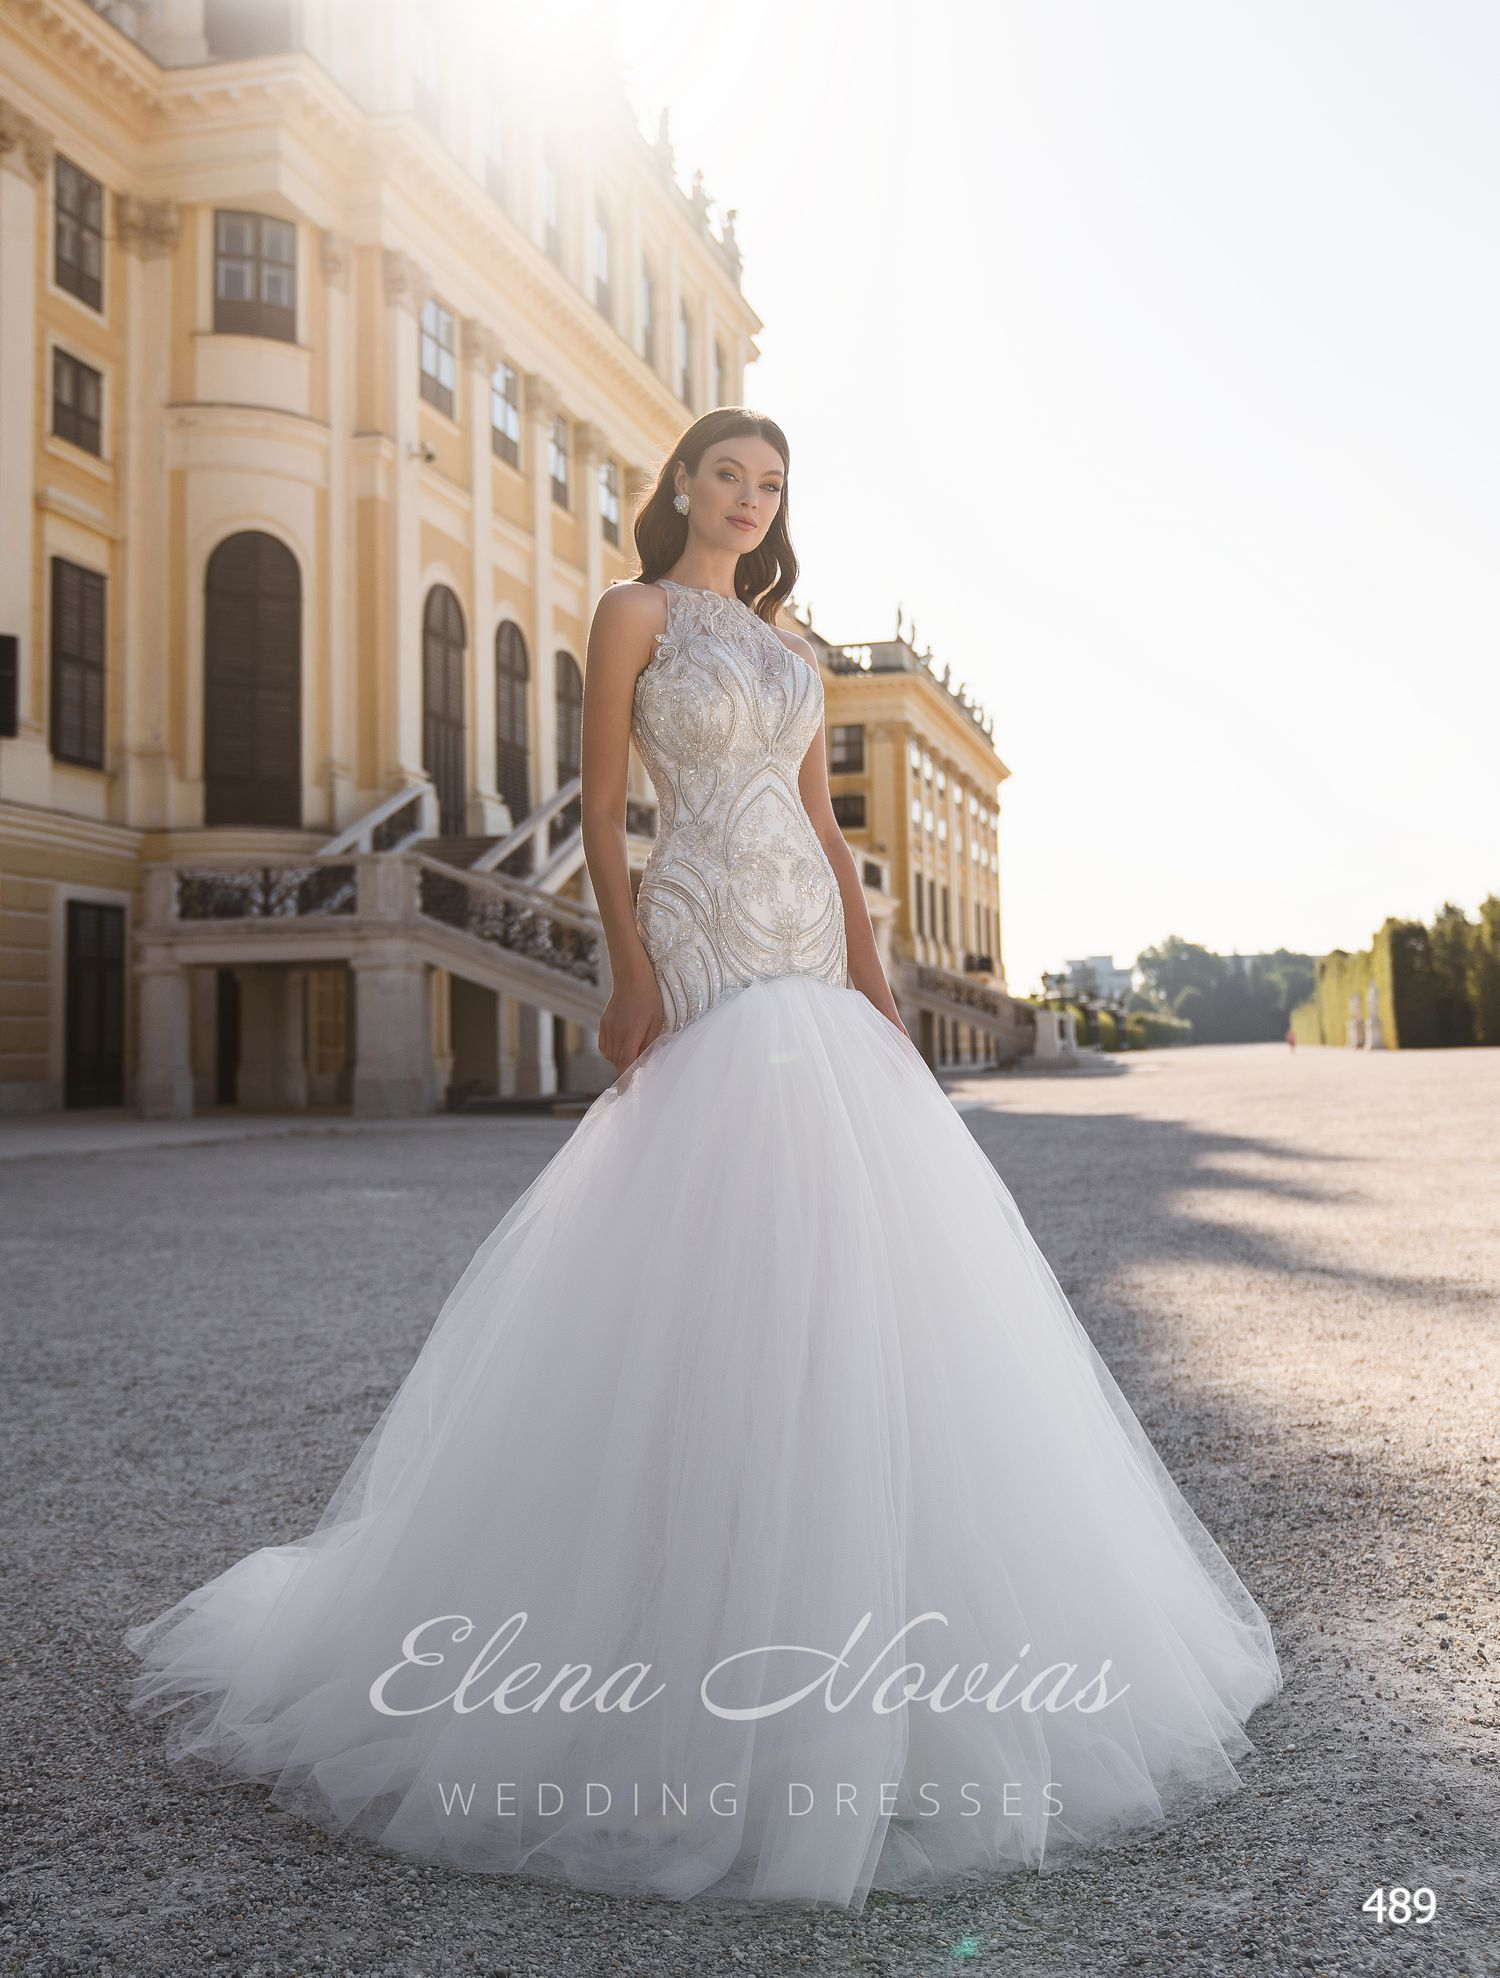 Wedding dresses 489